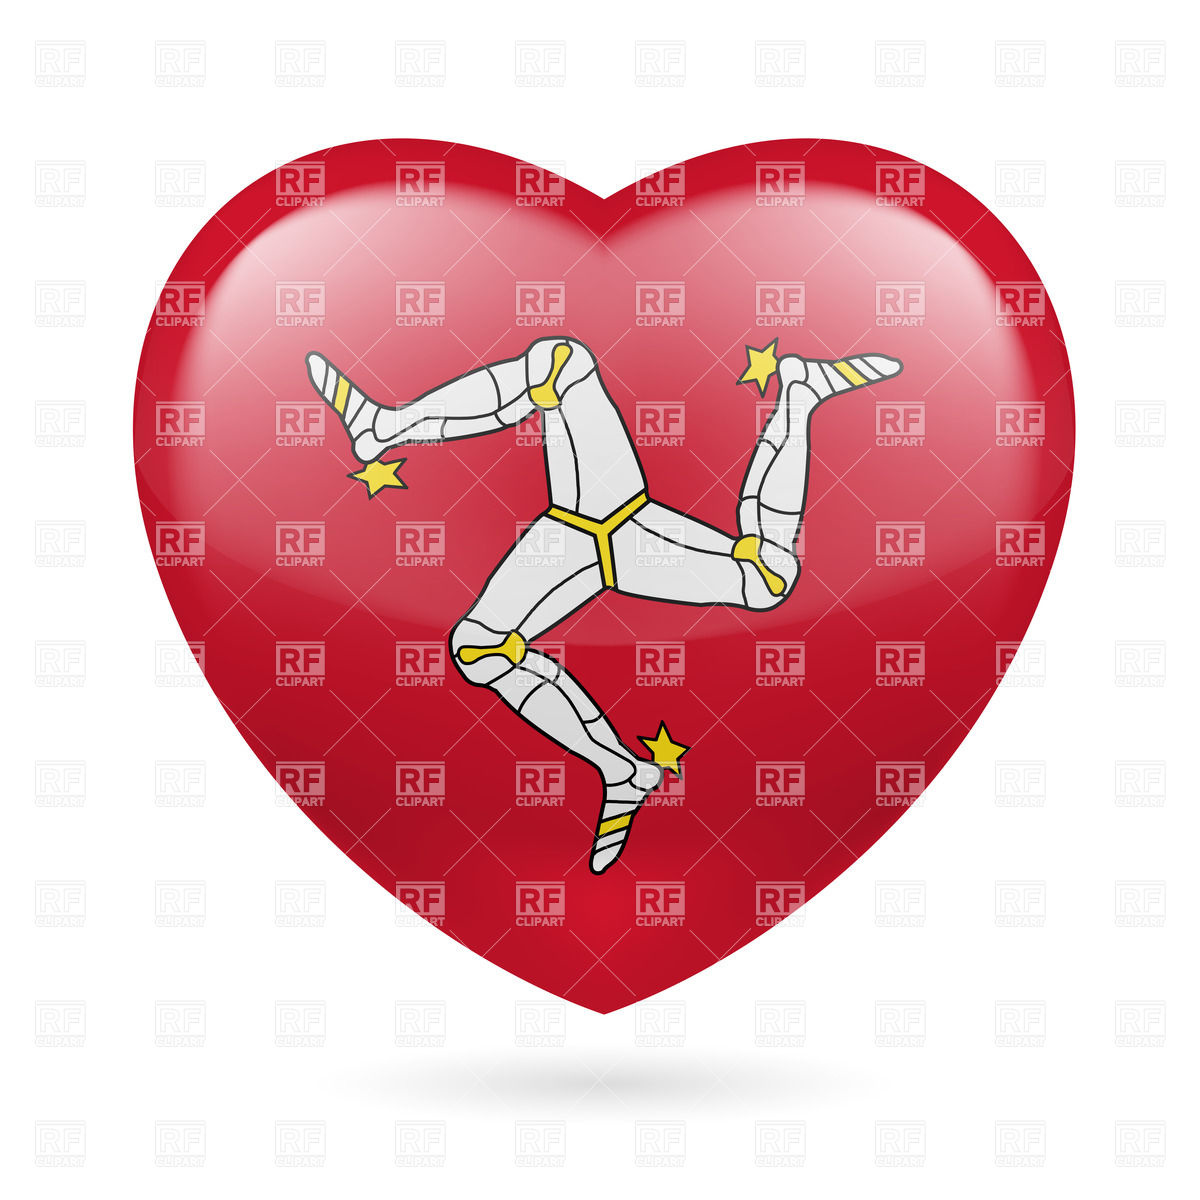 I love Isle of Man. Heart with flag colors Vector Image #31831.